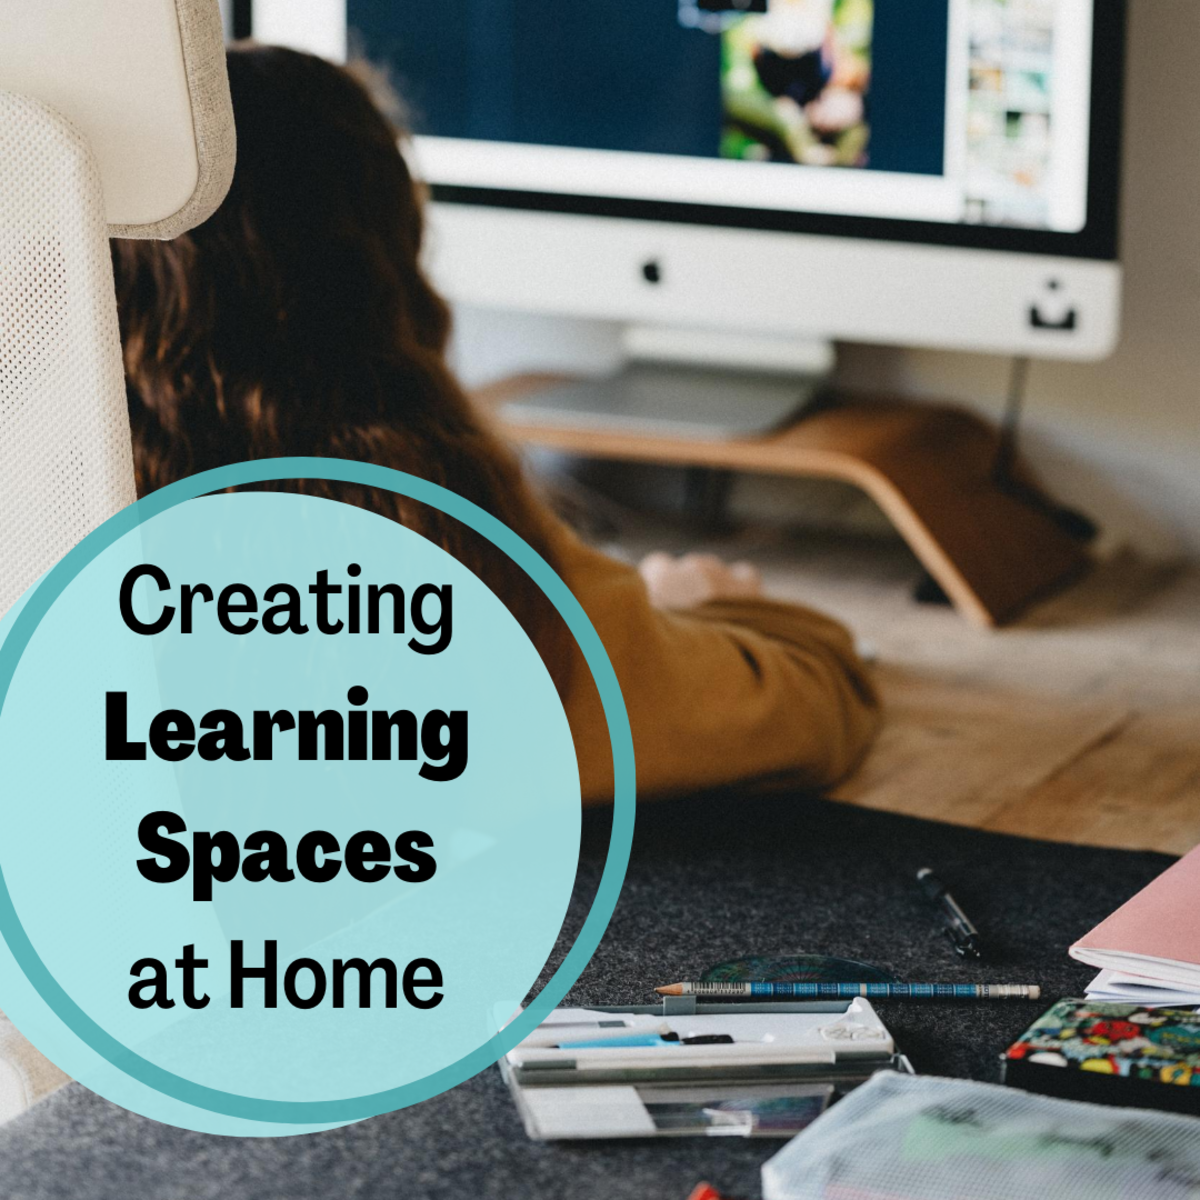 Get advice on creating a space in your home that stimulates learning and minimizes distractions for your child, even if you don't have much room to spare.